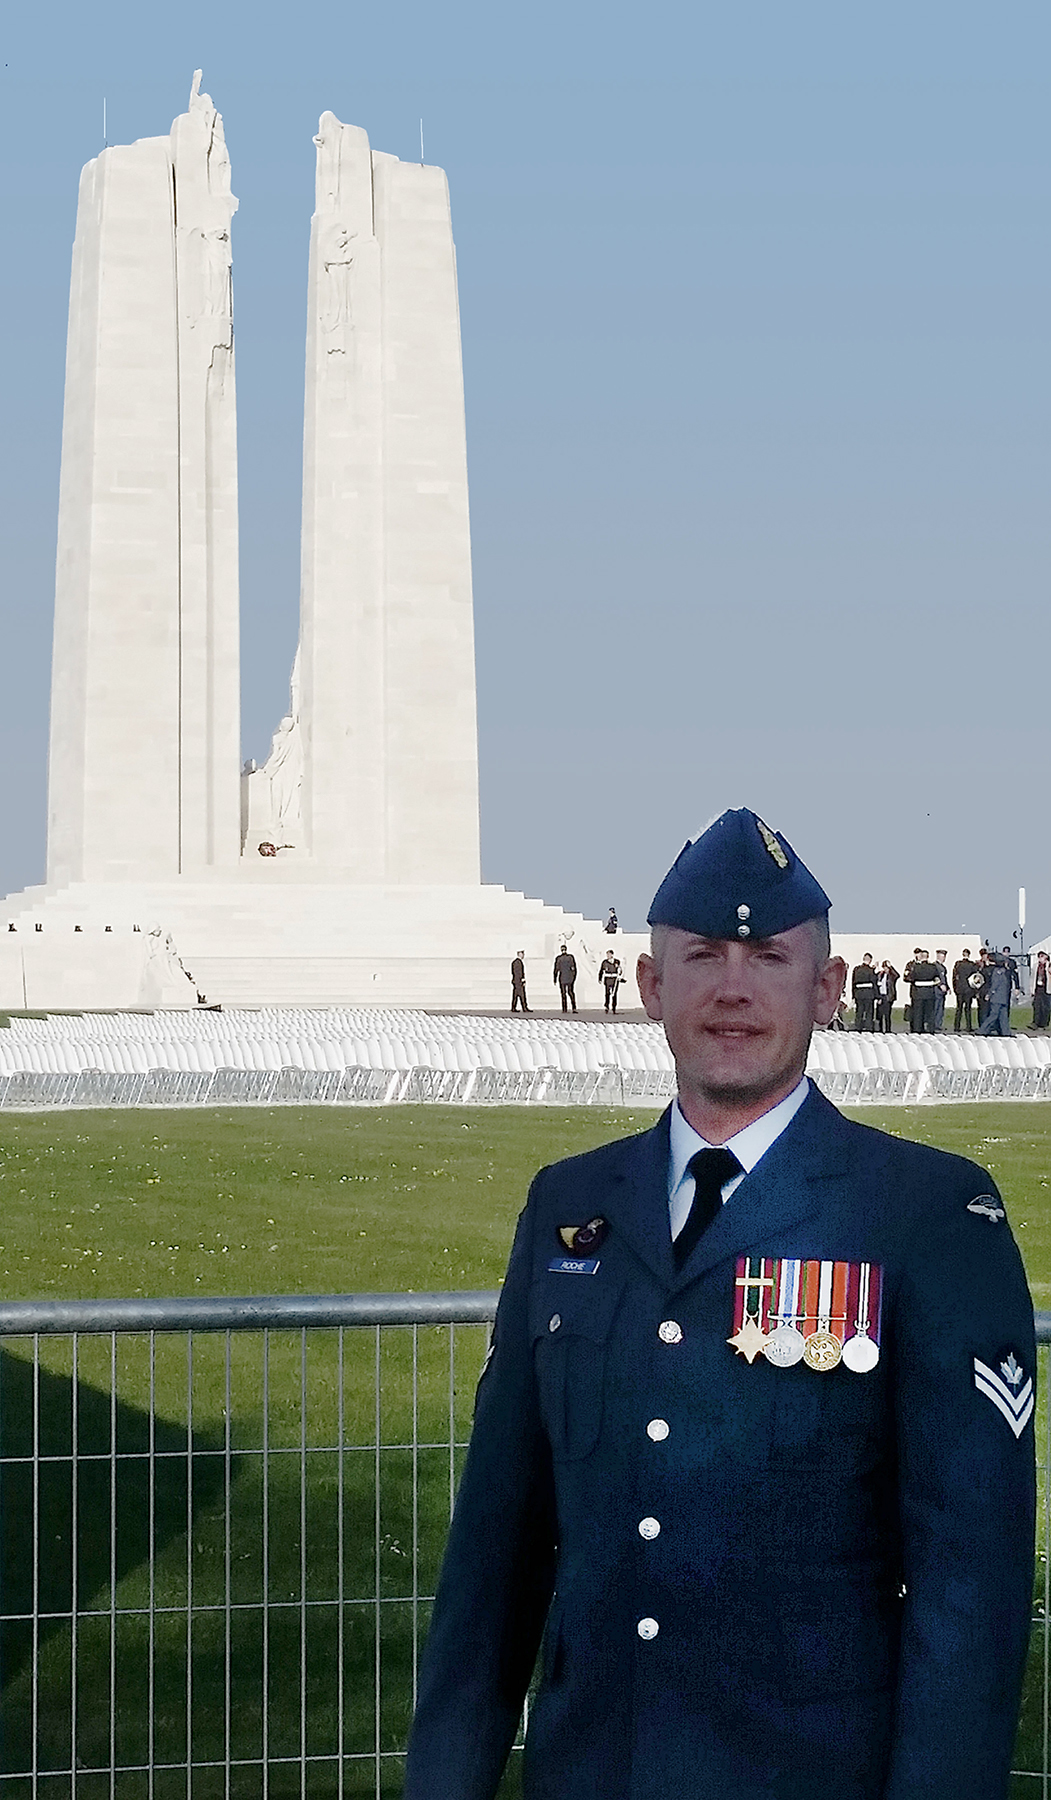 A man in a blue uniform stands in front of a chain link fence; in the distant background is an enormously tall monument comprising two pylons with sculpted figures. People are assembled at the base of one of the pylons.